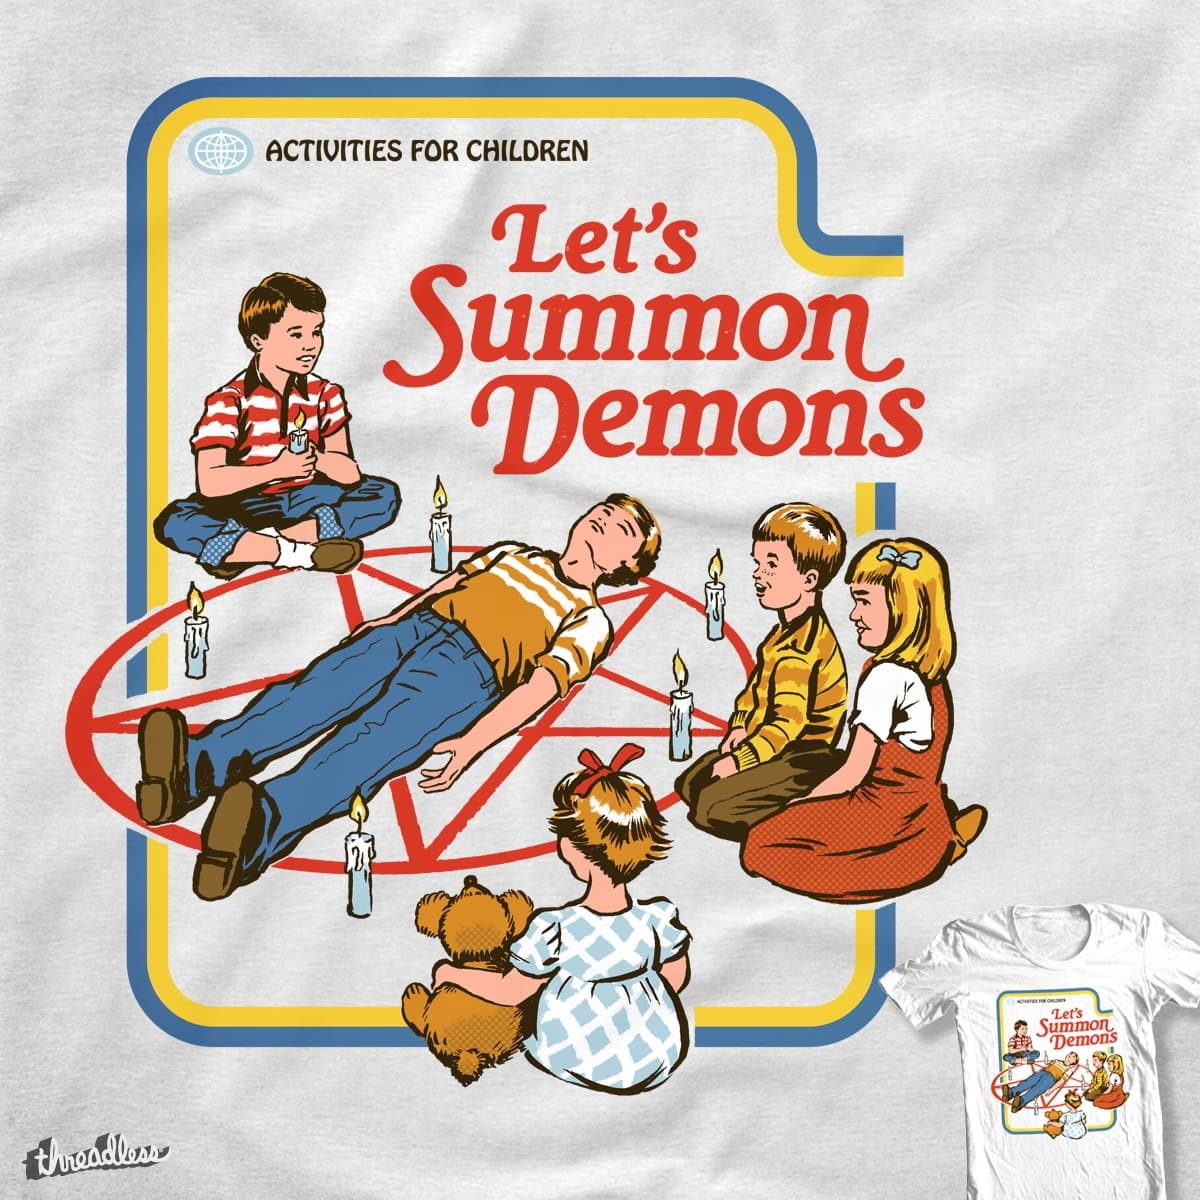 Let's Summon Demons by blue sparrow on Threadless